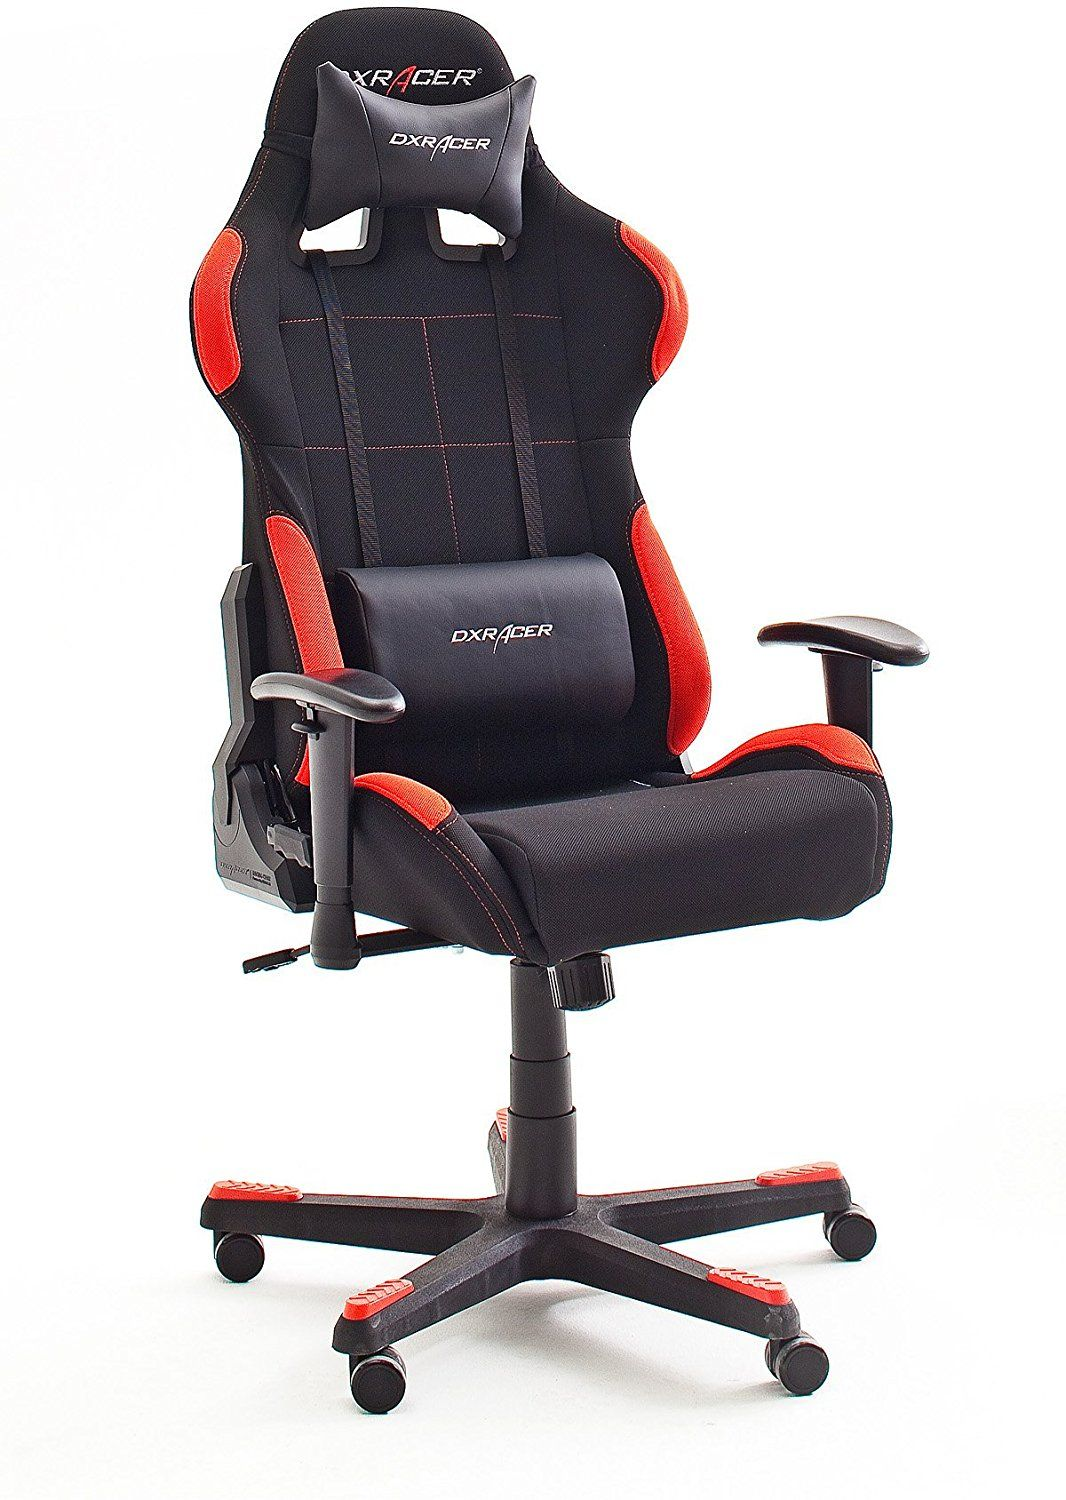 Dx Gaming Chair Desk Ballard Design Racer1 Office Computer Executive With Armrests Frame Nylon 78 X 124 134 52 Cm Fabric Black Red